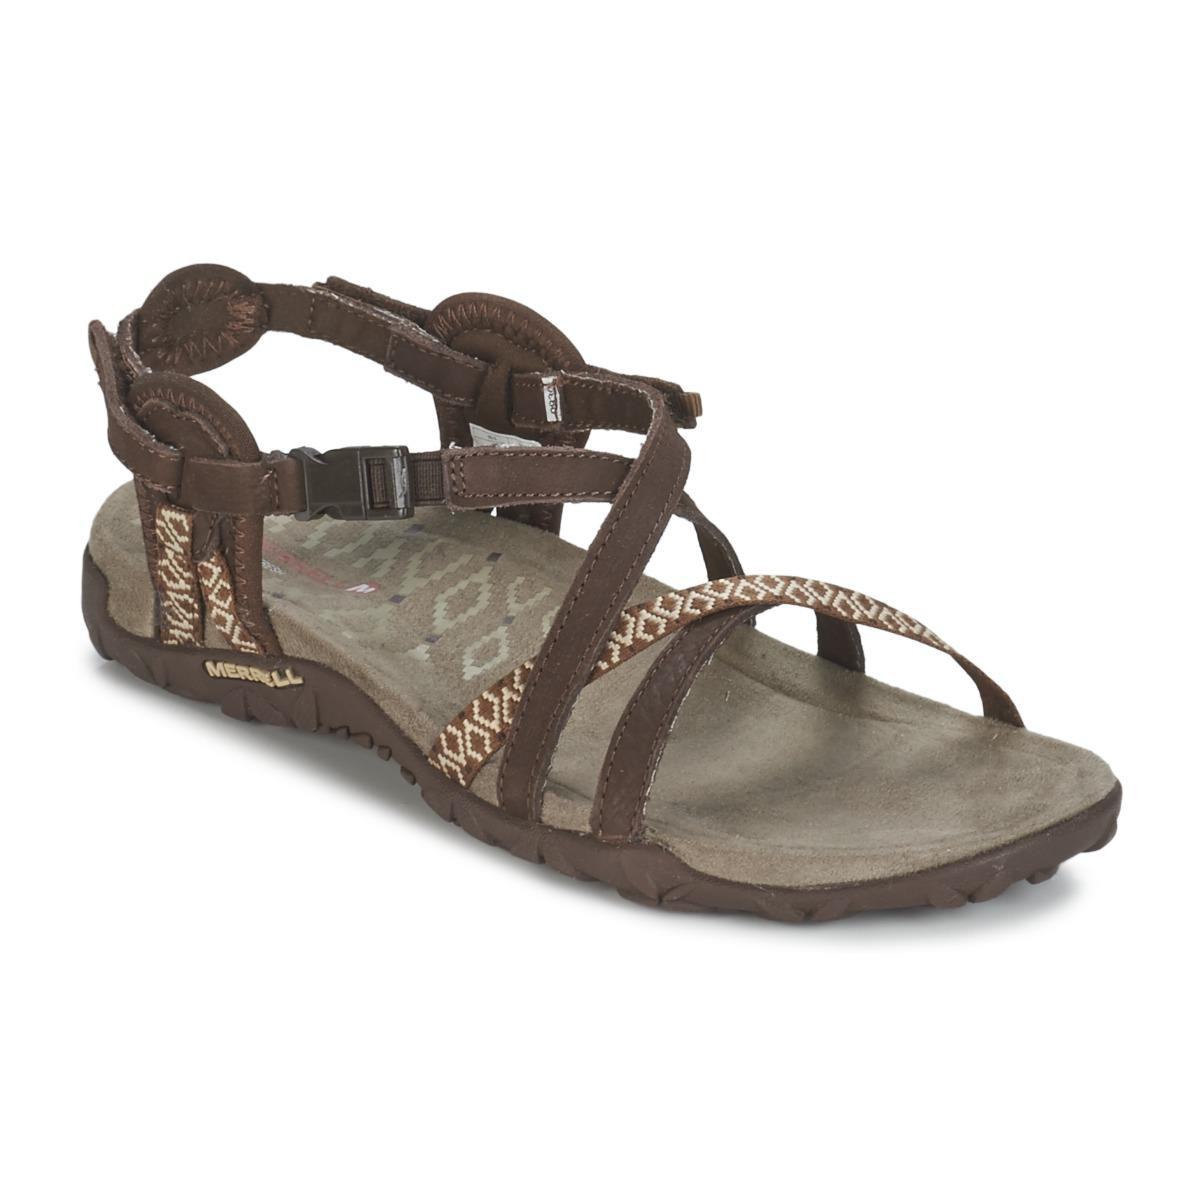 outlet order online Cerise nubuck 'Terran Lattice II' casual sandals 2014 new online cheap price factory outlet buy cheap big discount footlocker zbMhc0